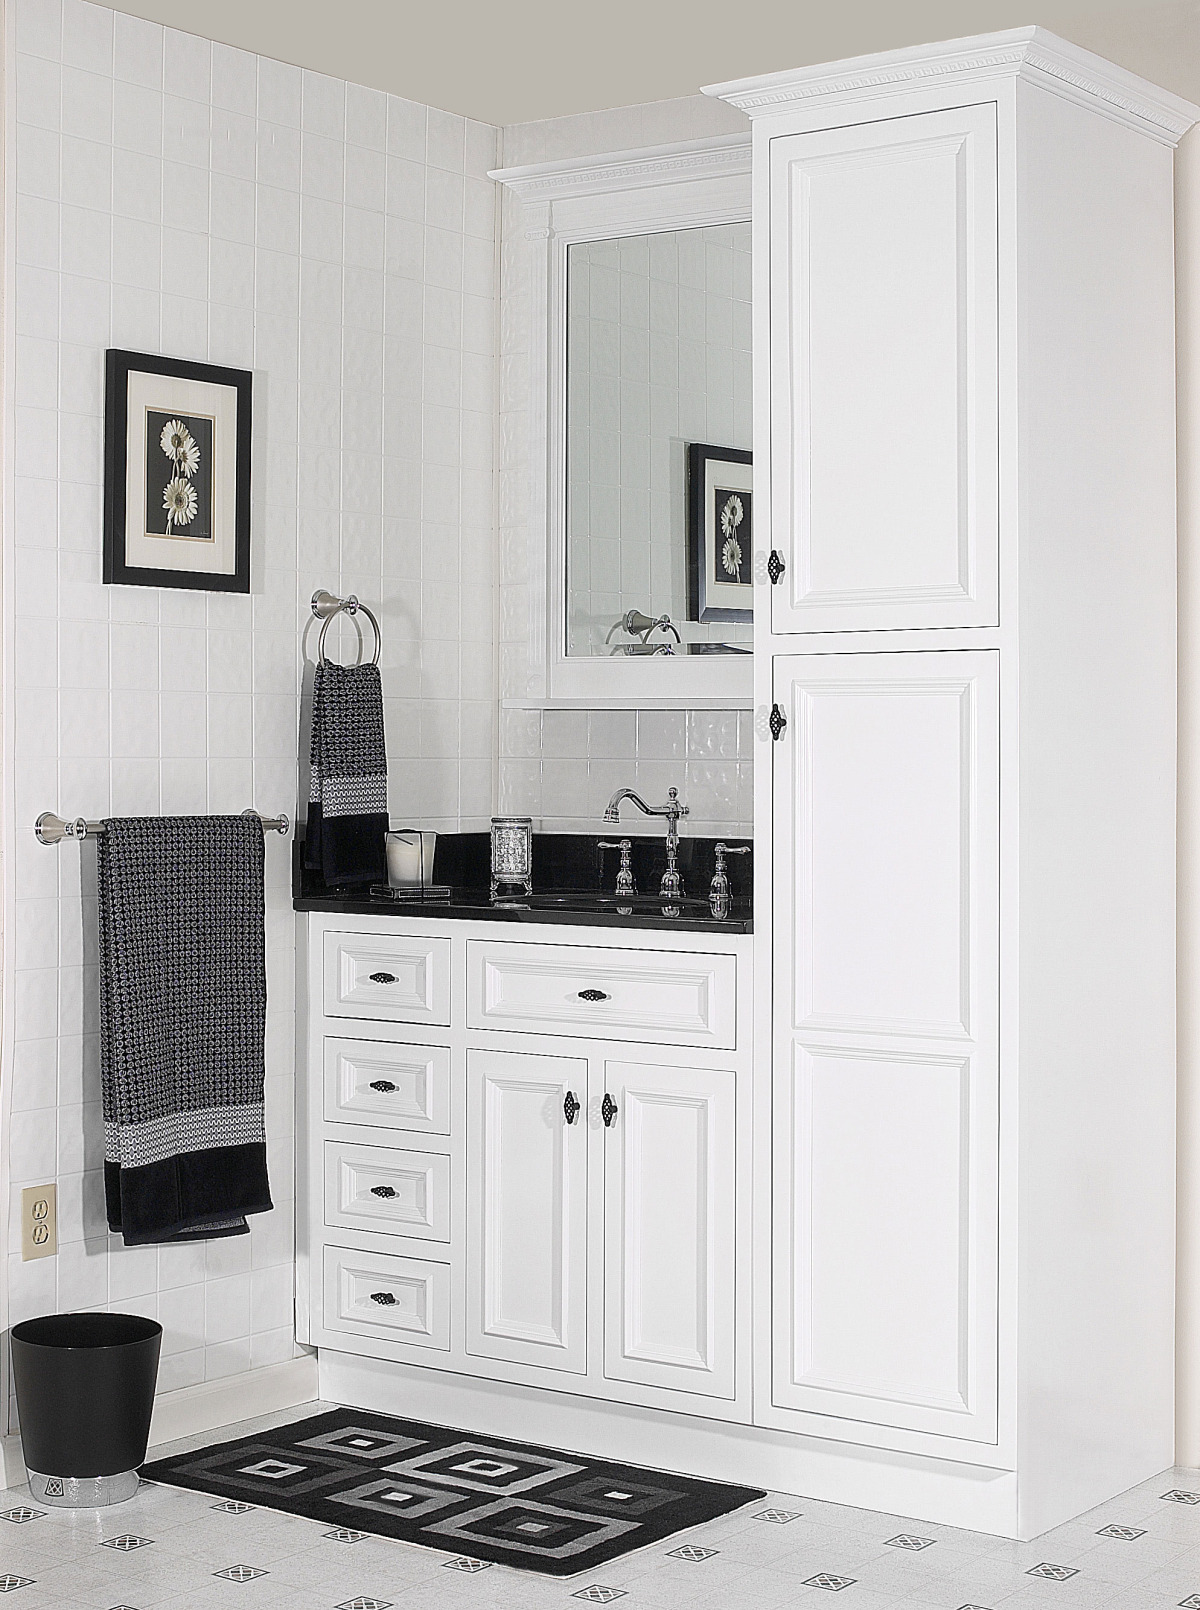 Bathroom vanity premium kitchen cabinets for Bathroom cabinet designs photos